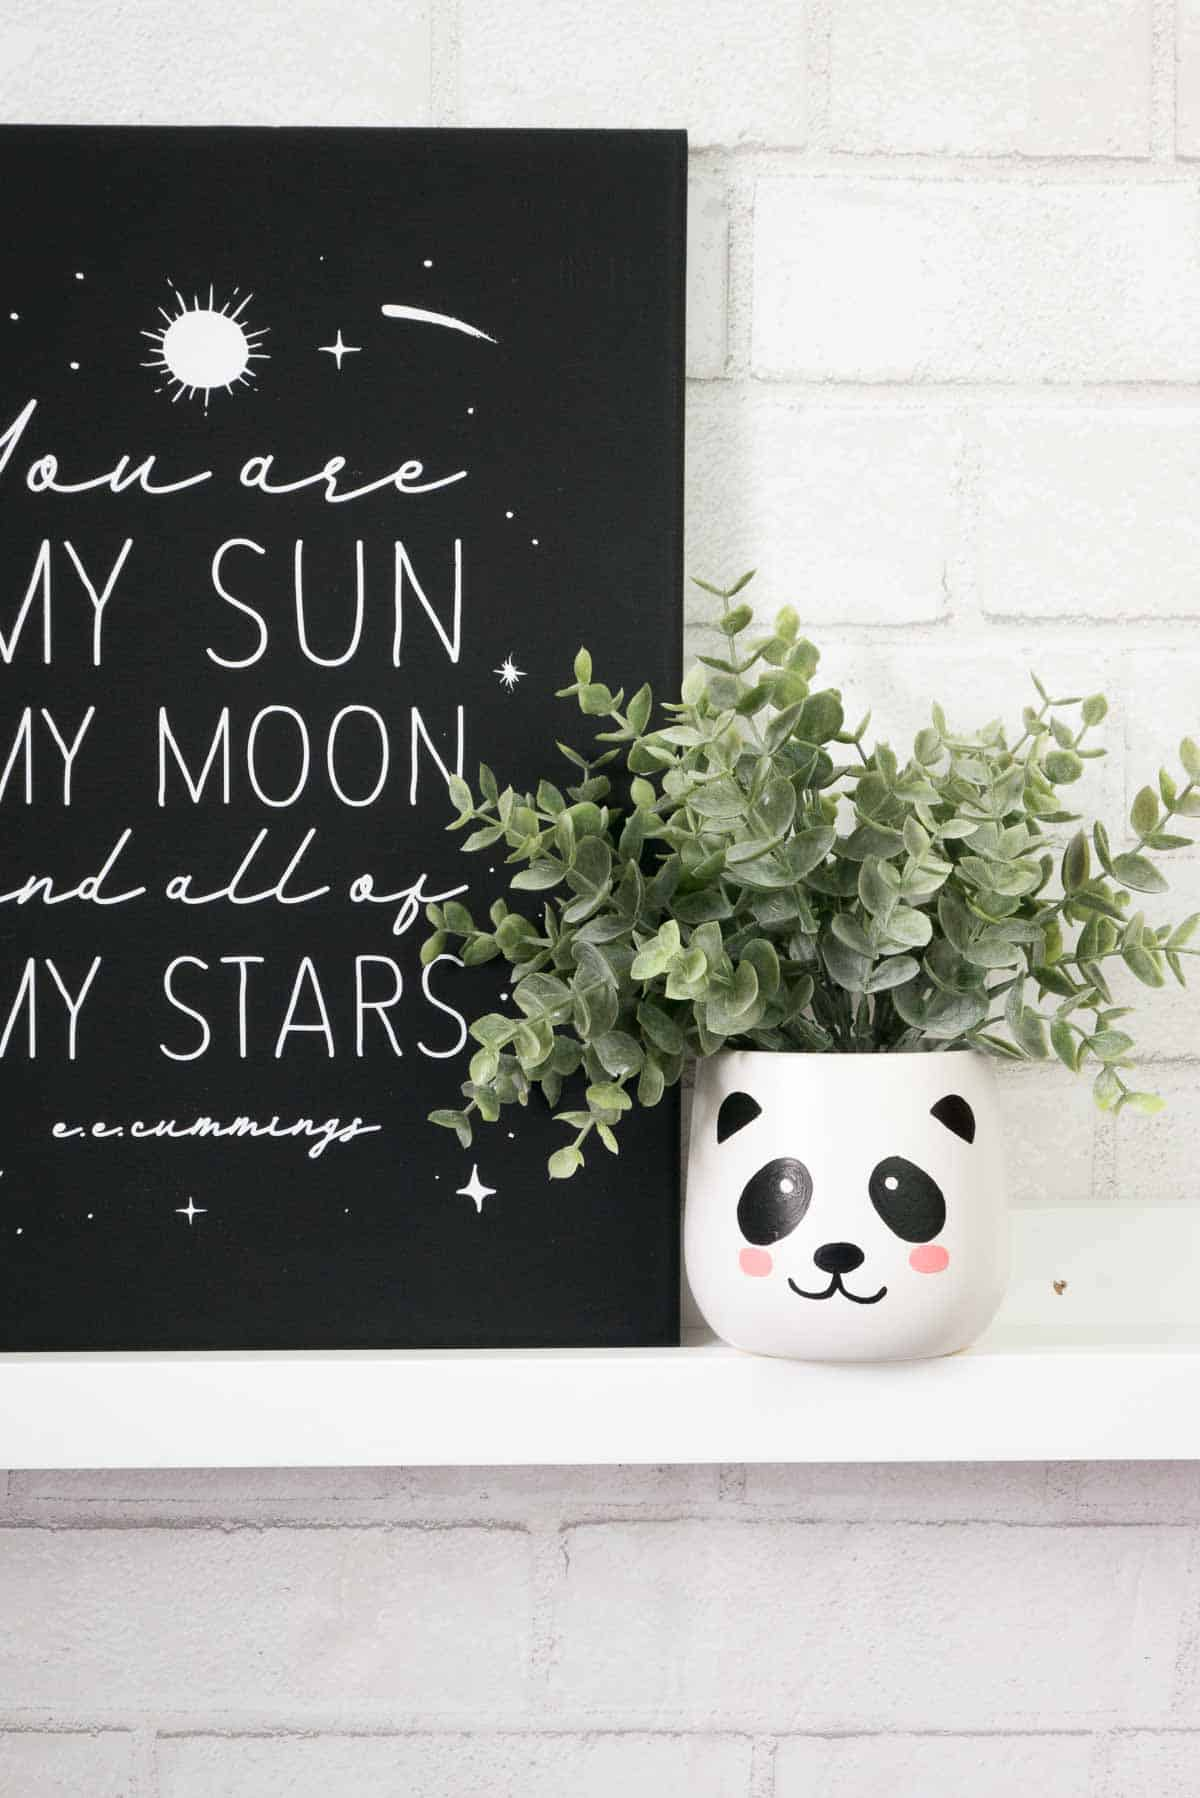 White ceramic planter with painted panda face on a ledge.